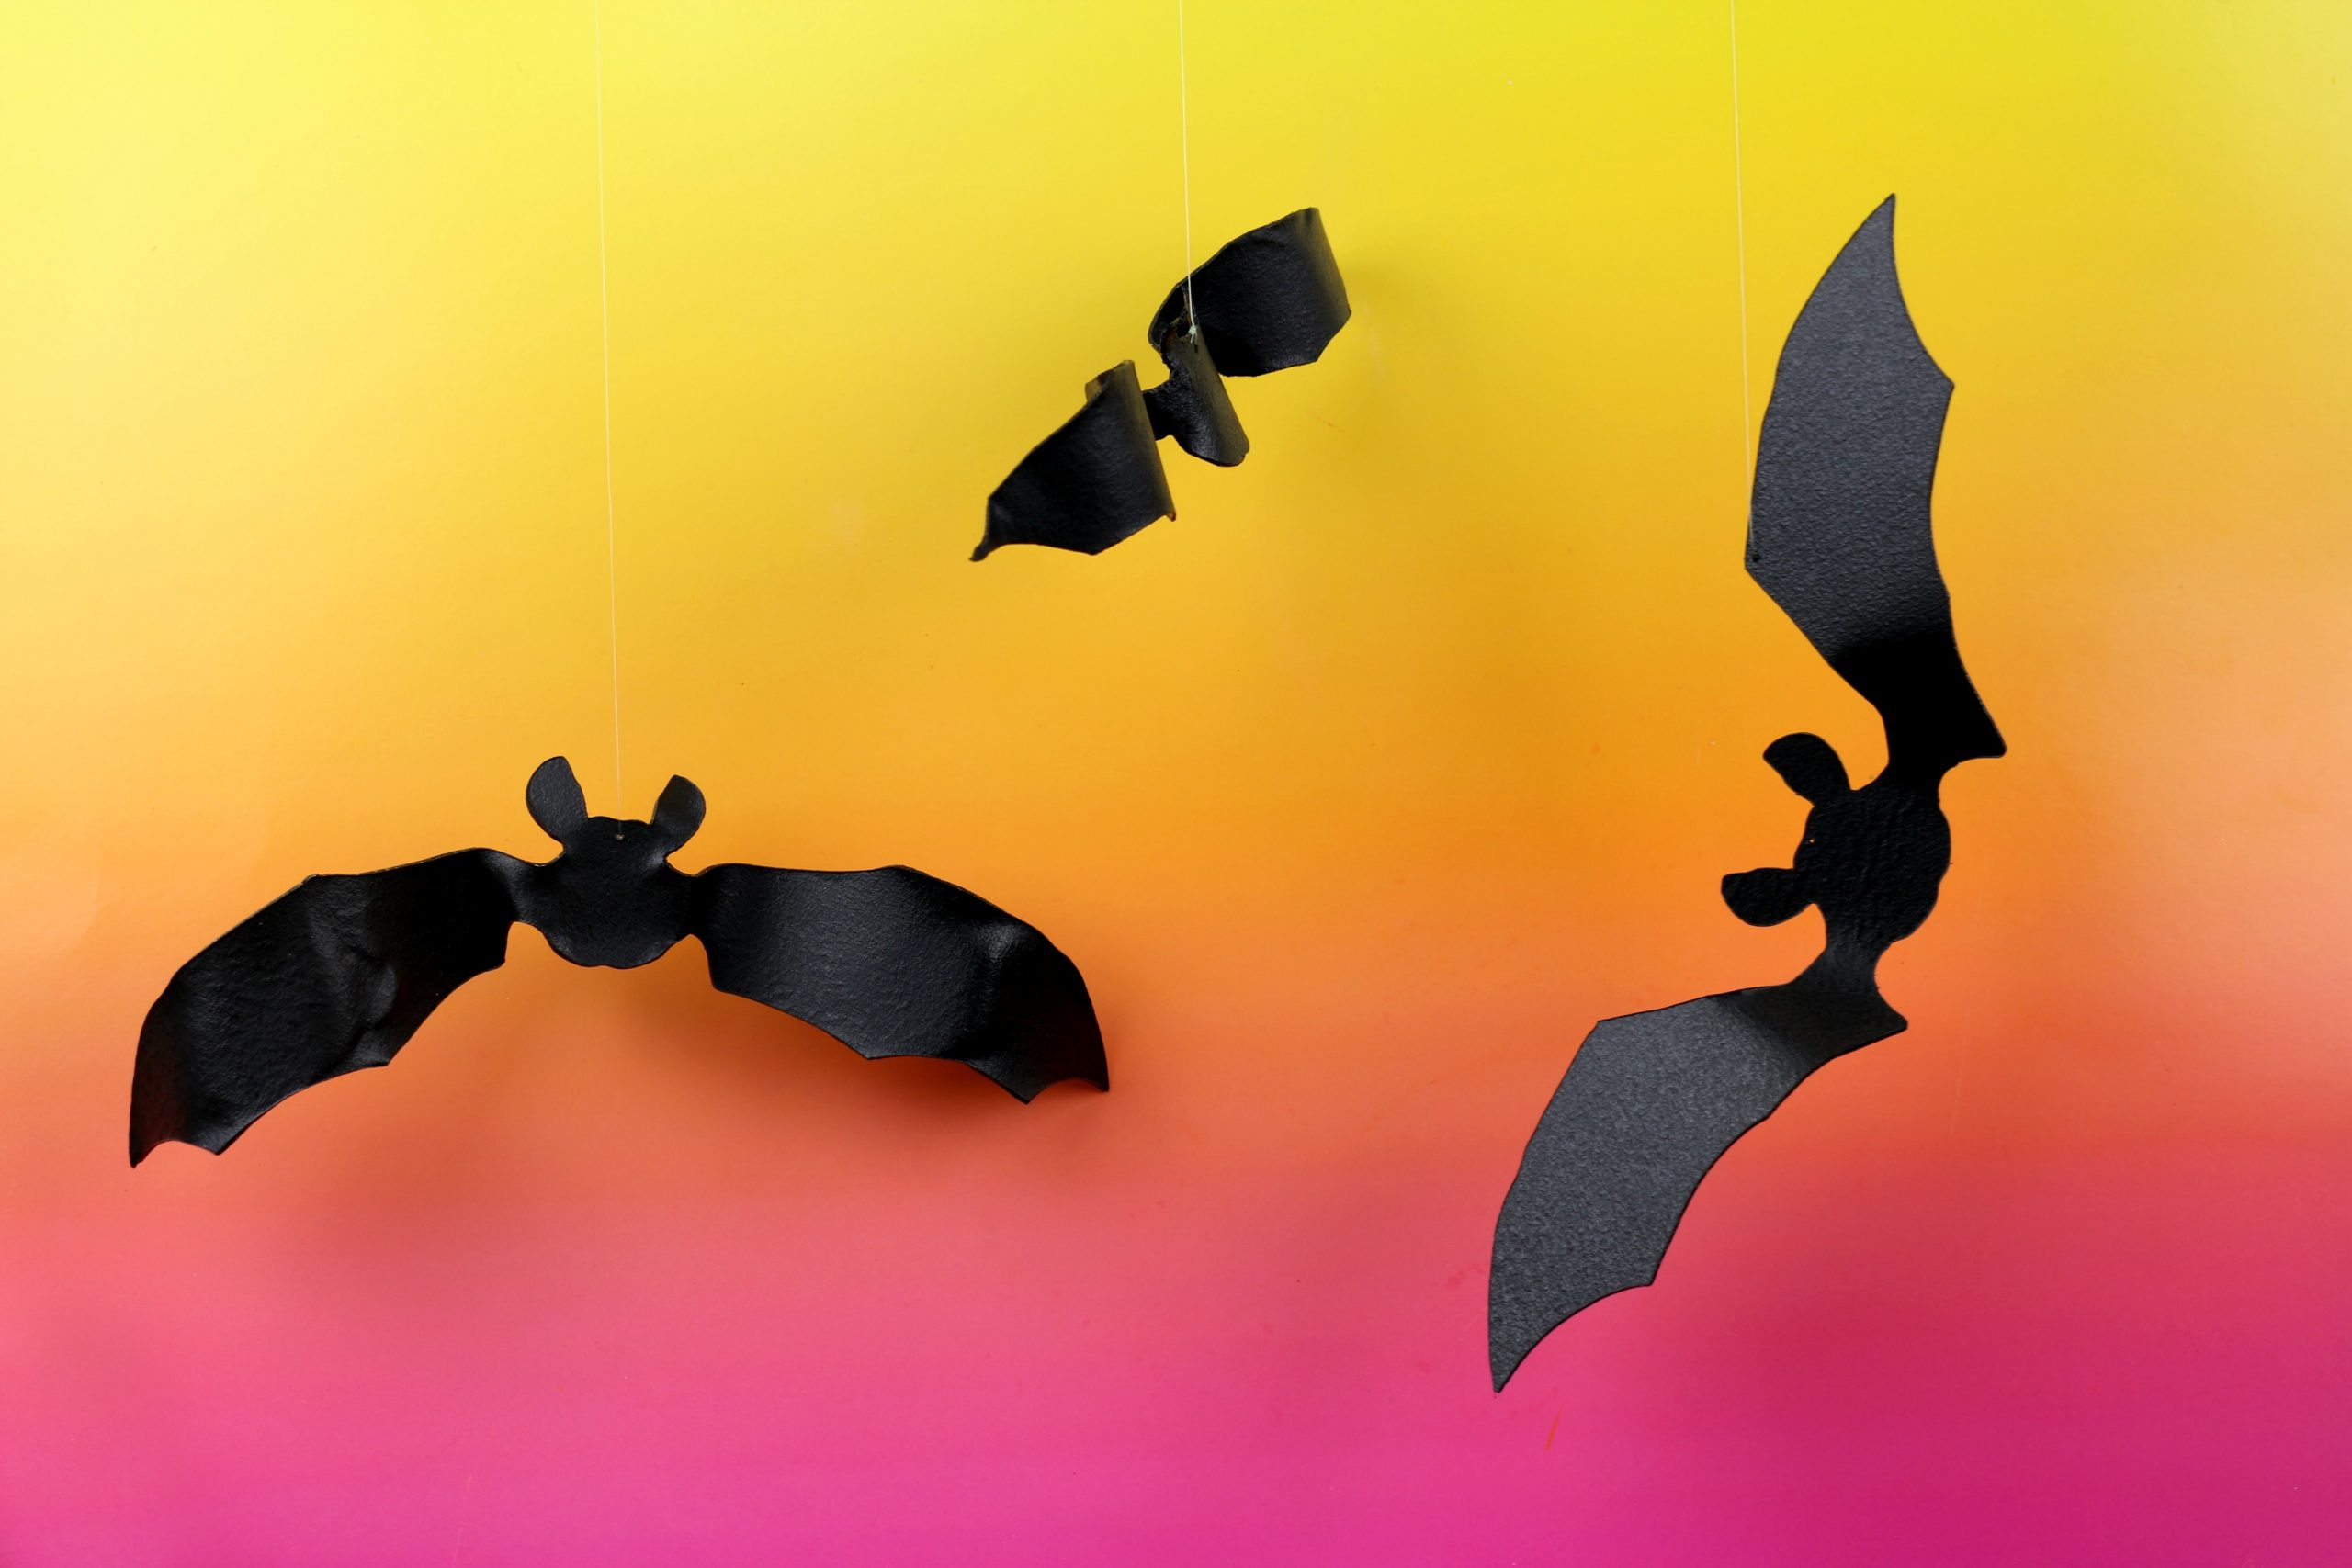 black bat shapes cut out of worbla plastic on pink and orange background